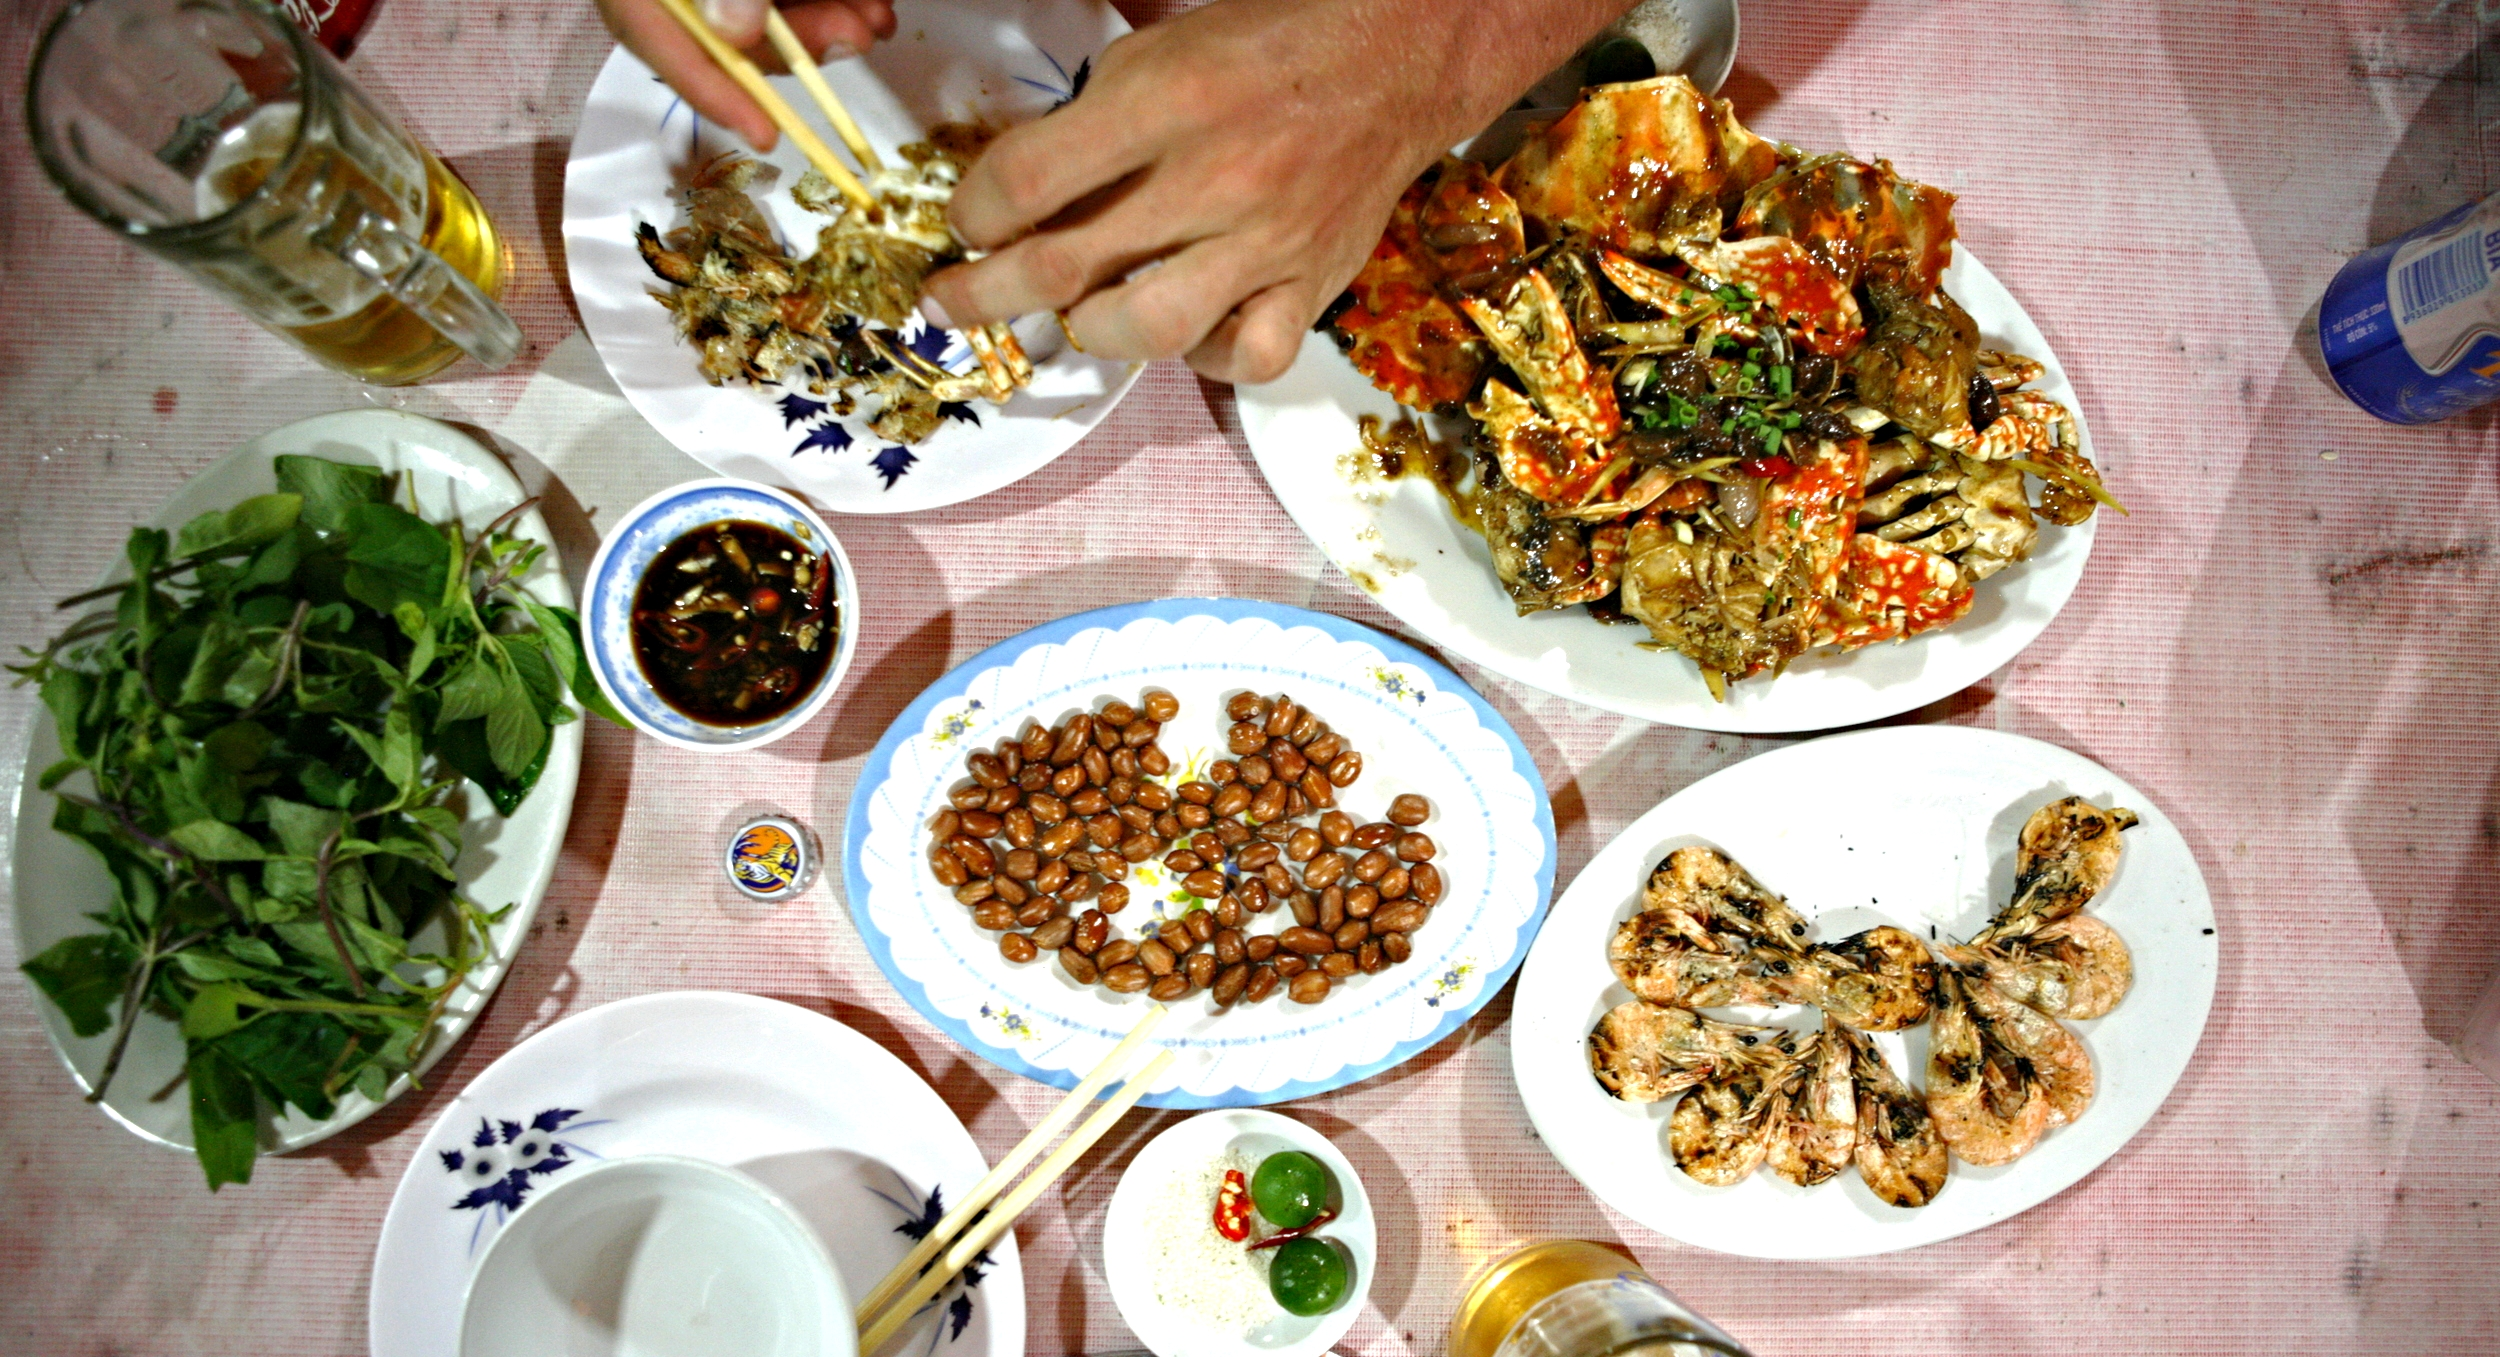 Our Ha Long Bay seafood feast of grilled shrimp, salted skin on peanuts and tamarind crab